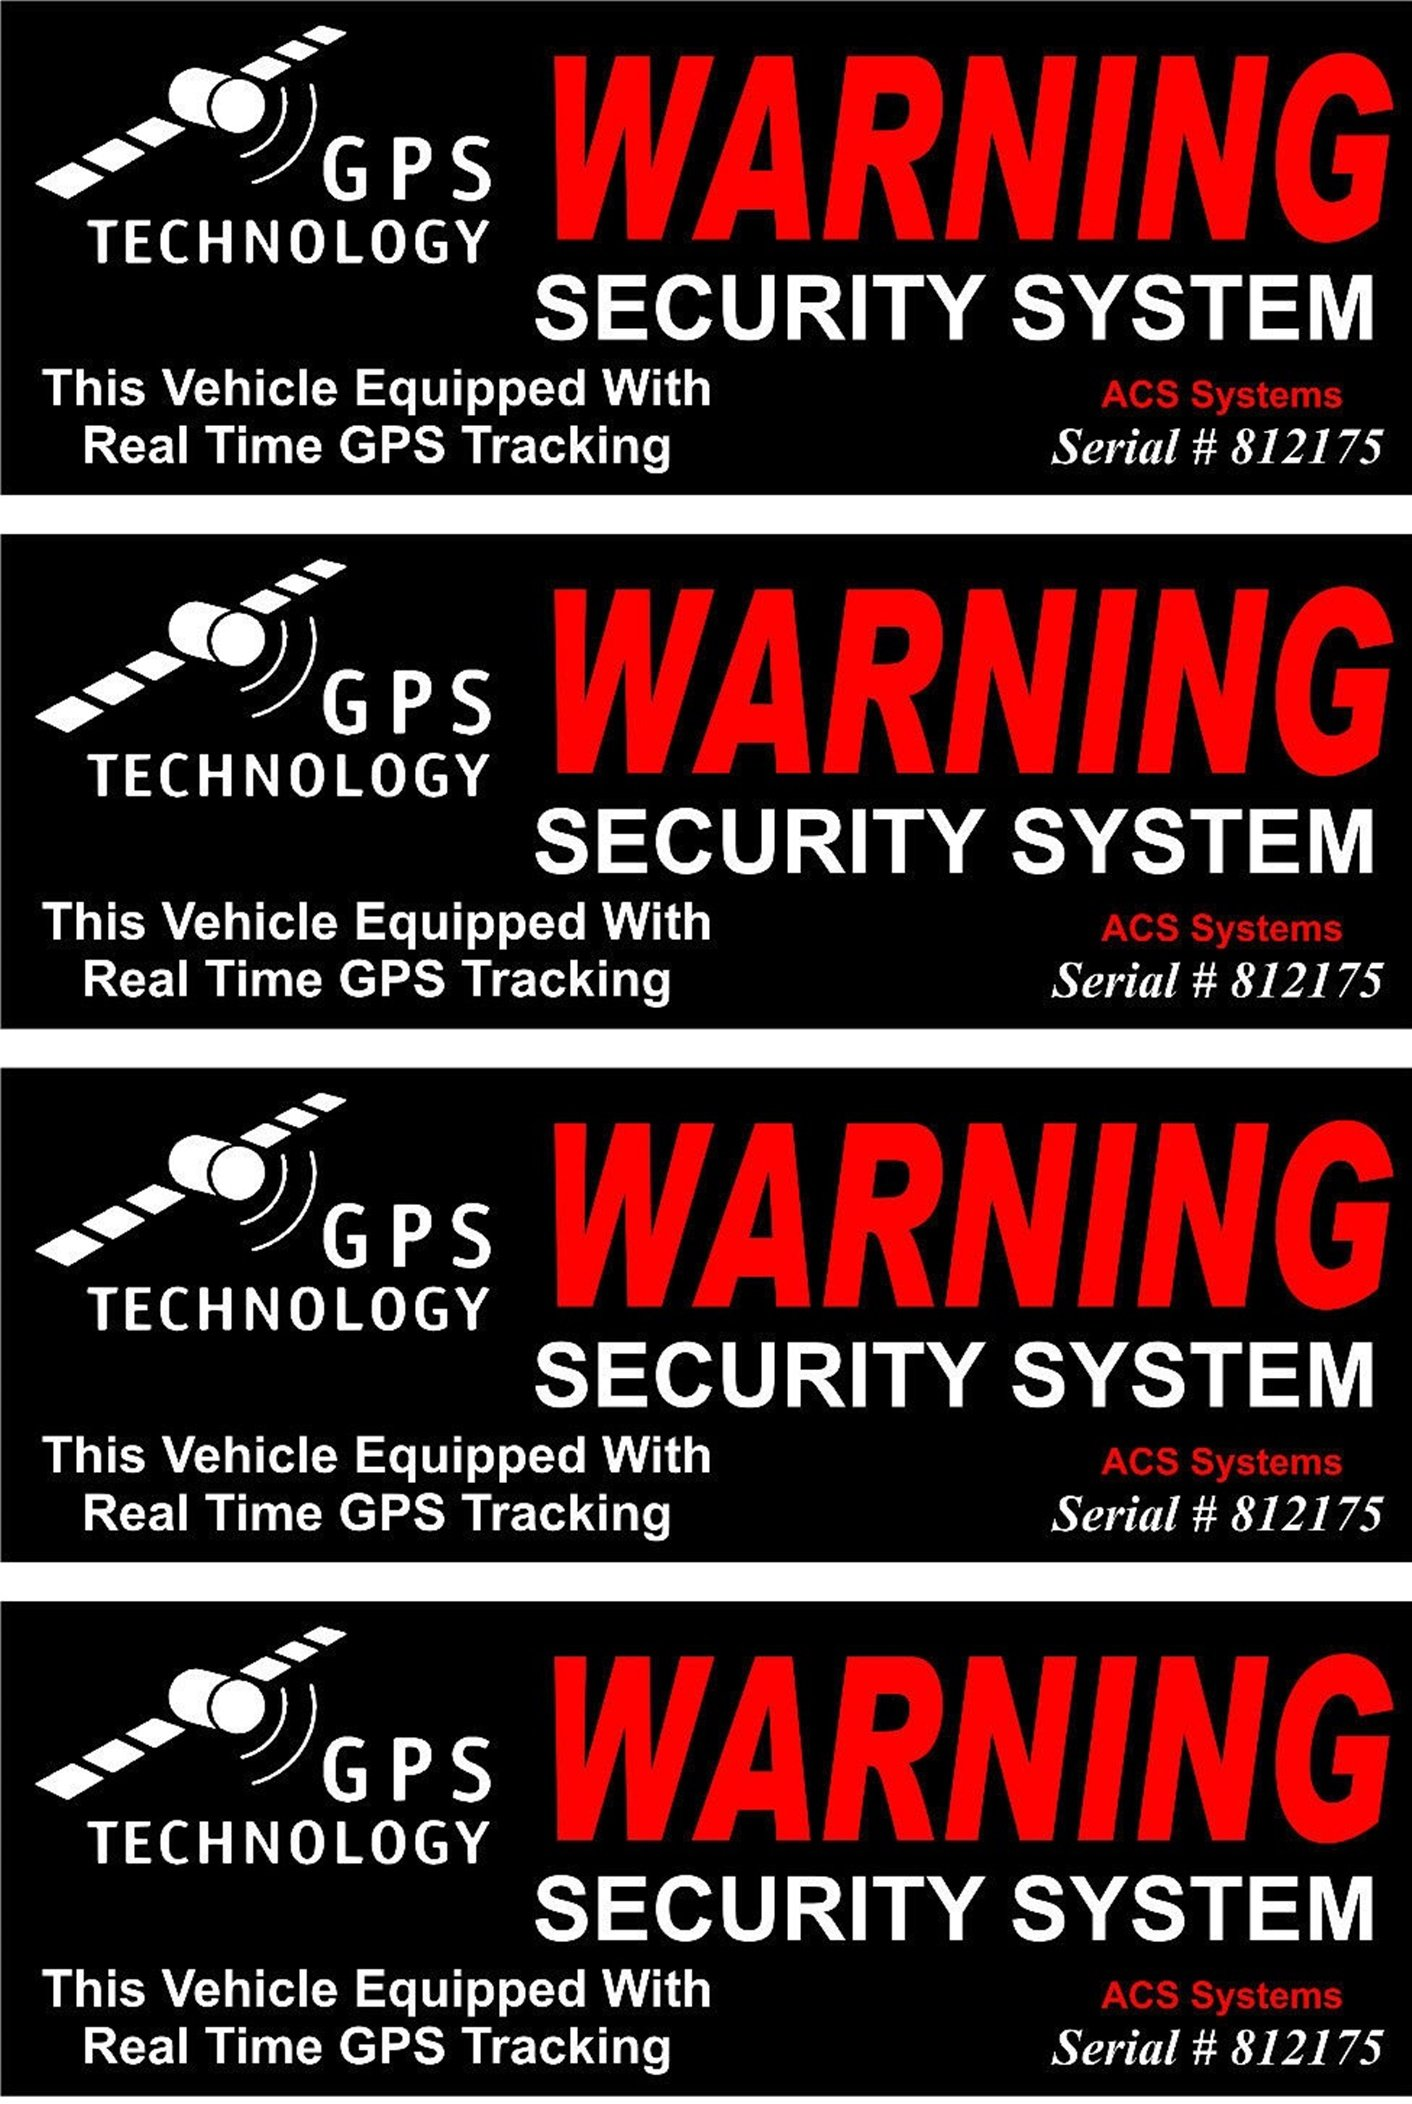 4 Set Astonishing Unique Warning GPS Tracking Security System Technology This Vehicle Equipped Real Time Outside Adhesive Stickers Sign Under Cameras Trespassing Fence Property Signs Size 4.5''x1.5''